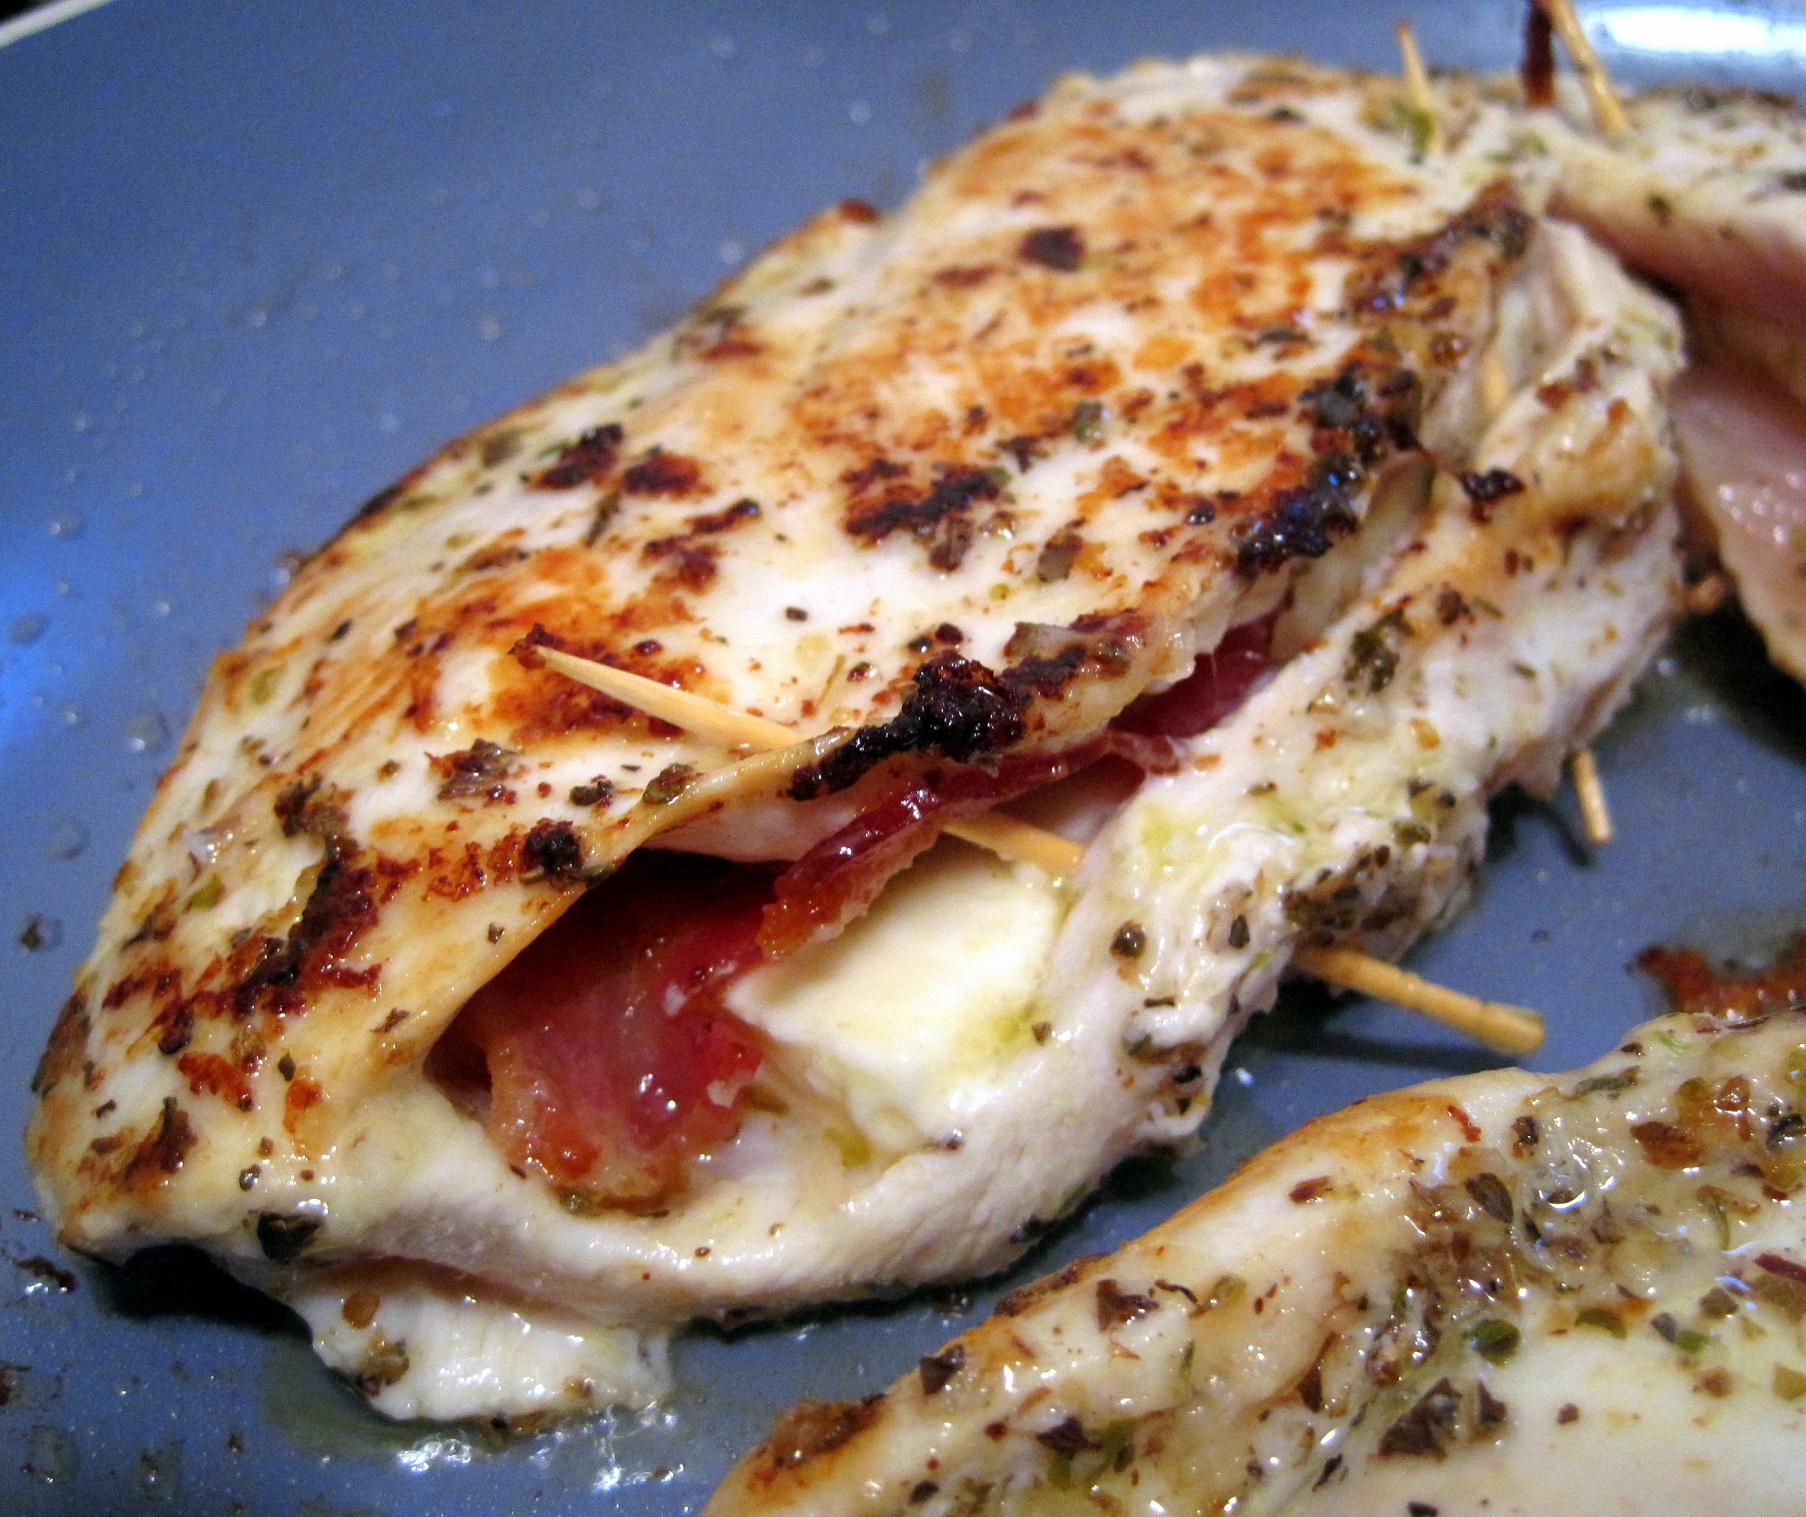 bacon topped meatloaf stuffed with beer cheese tasty feta cheese ...